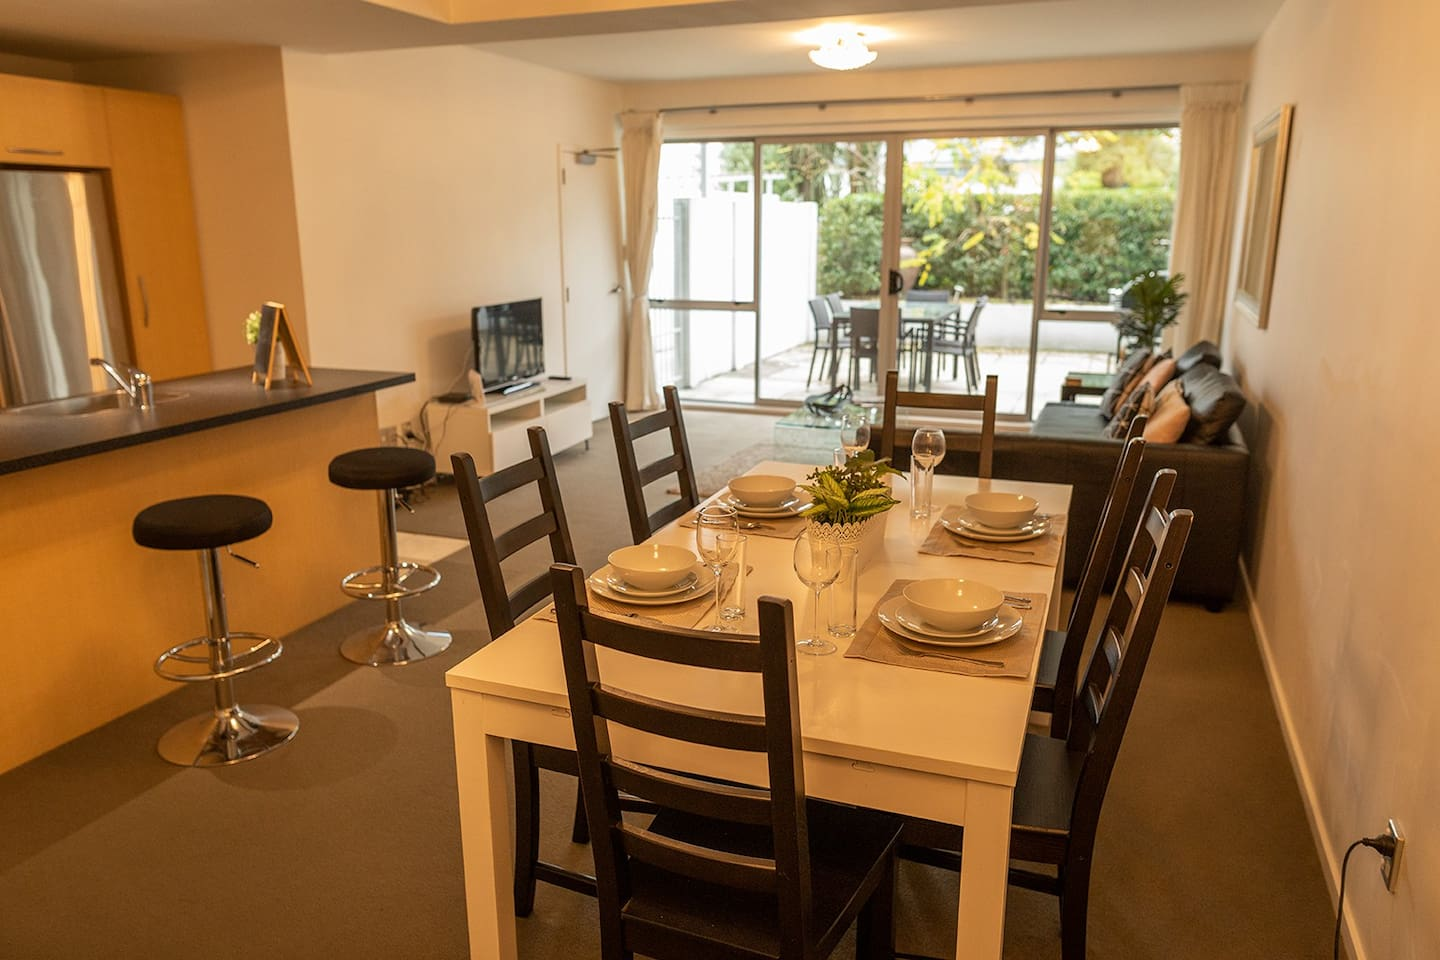 Warm spacious apartment with great indoor/outdoor flow